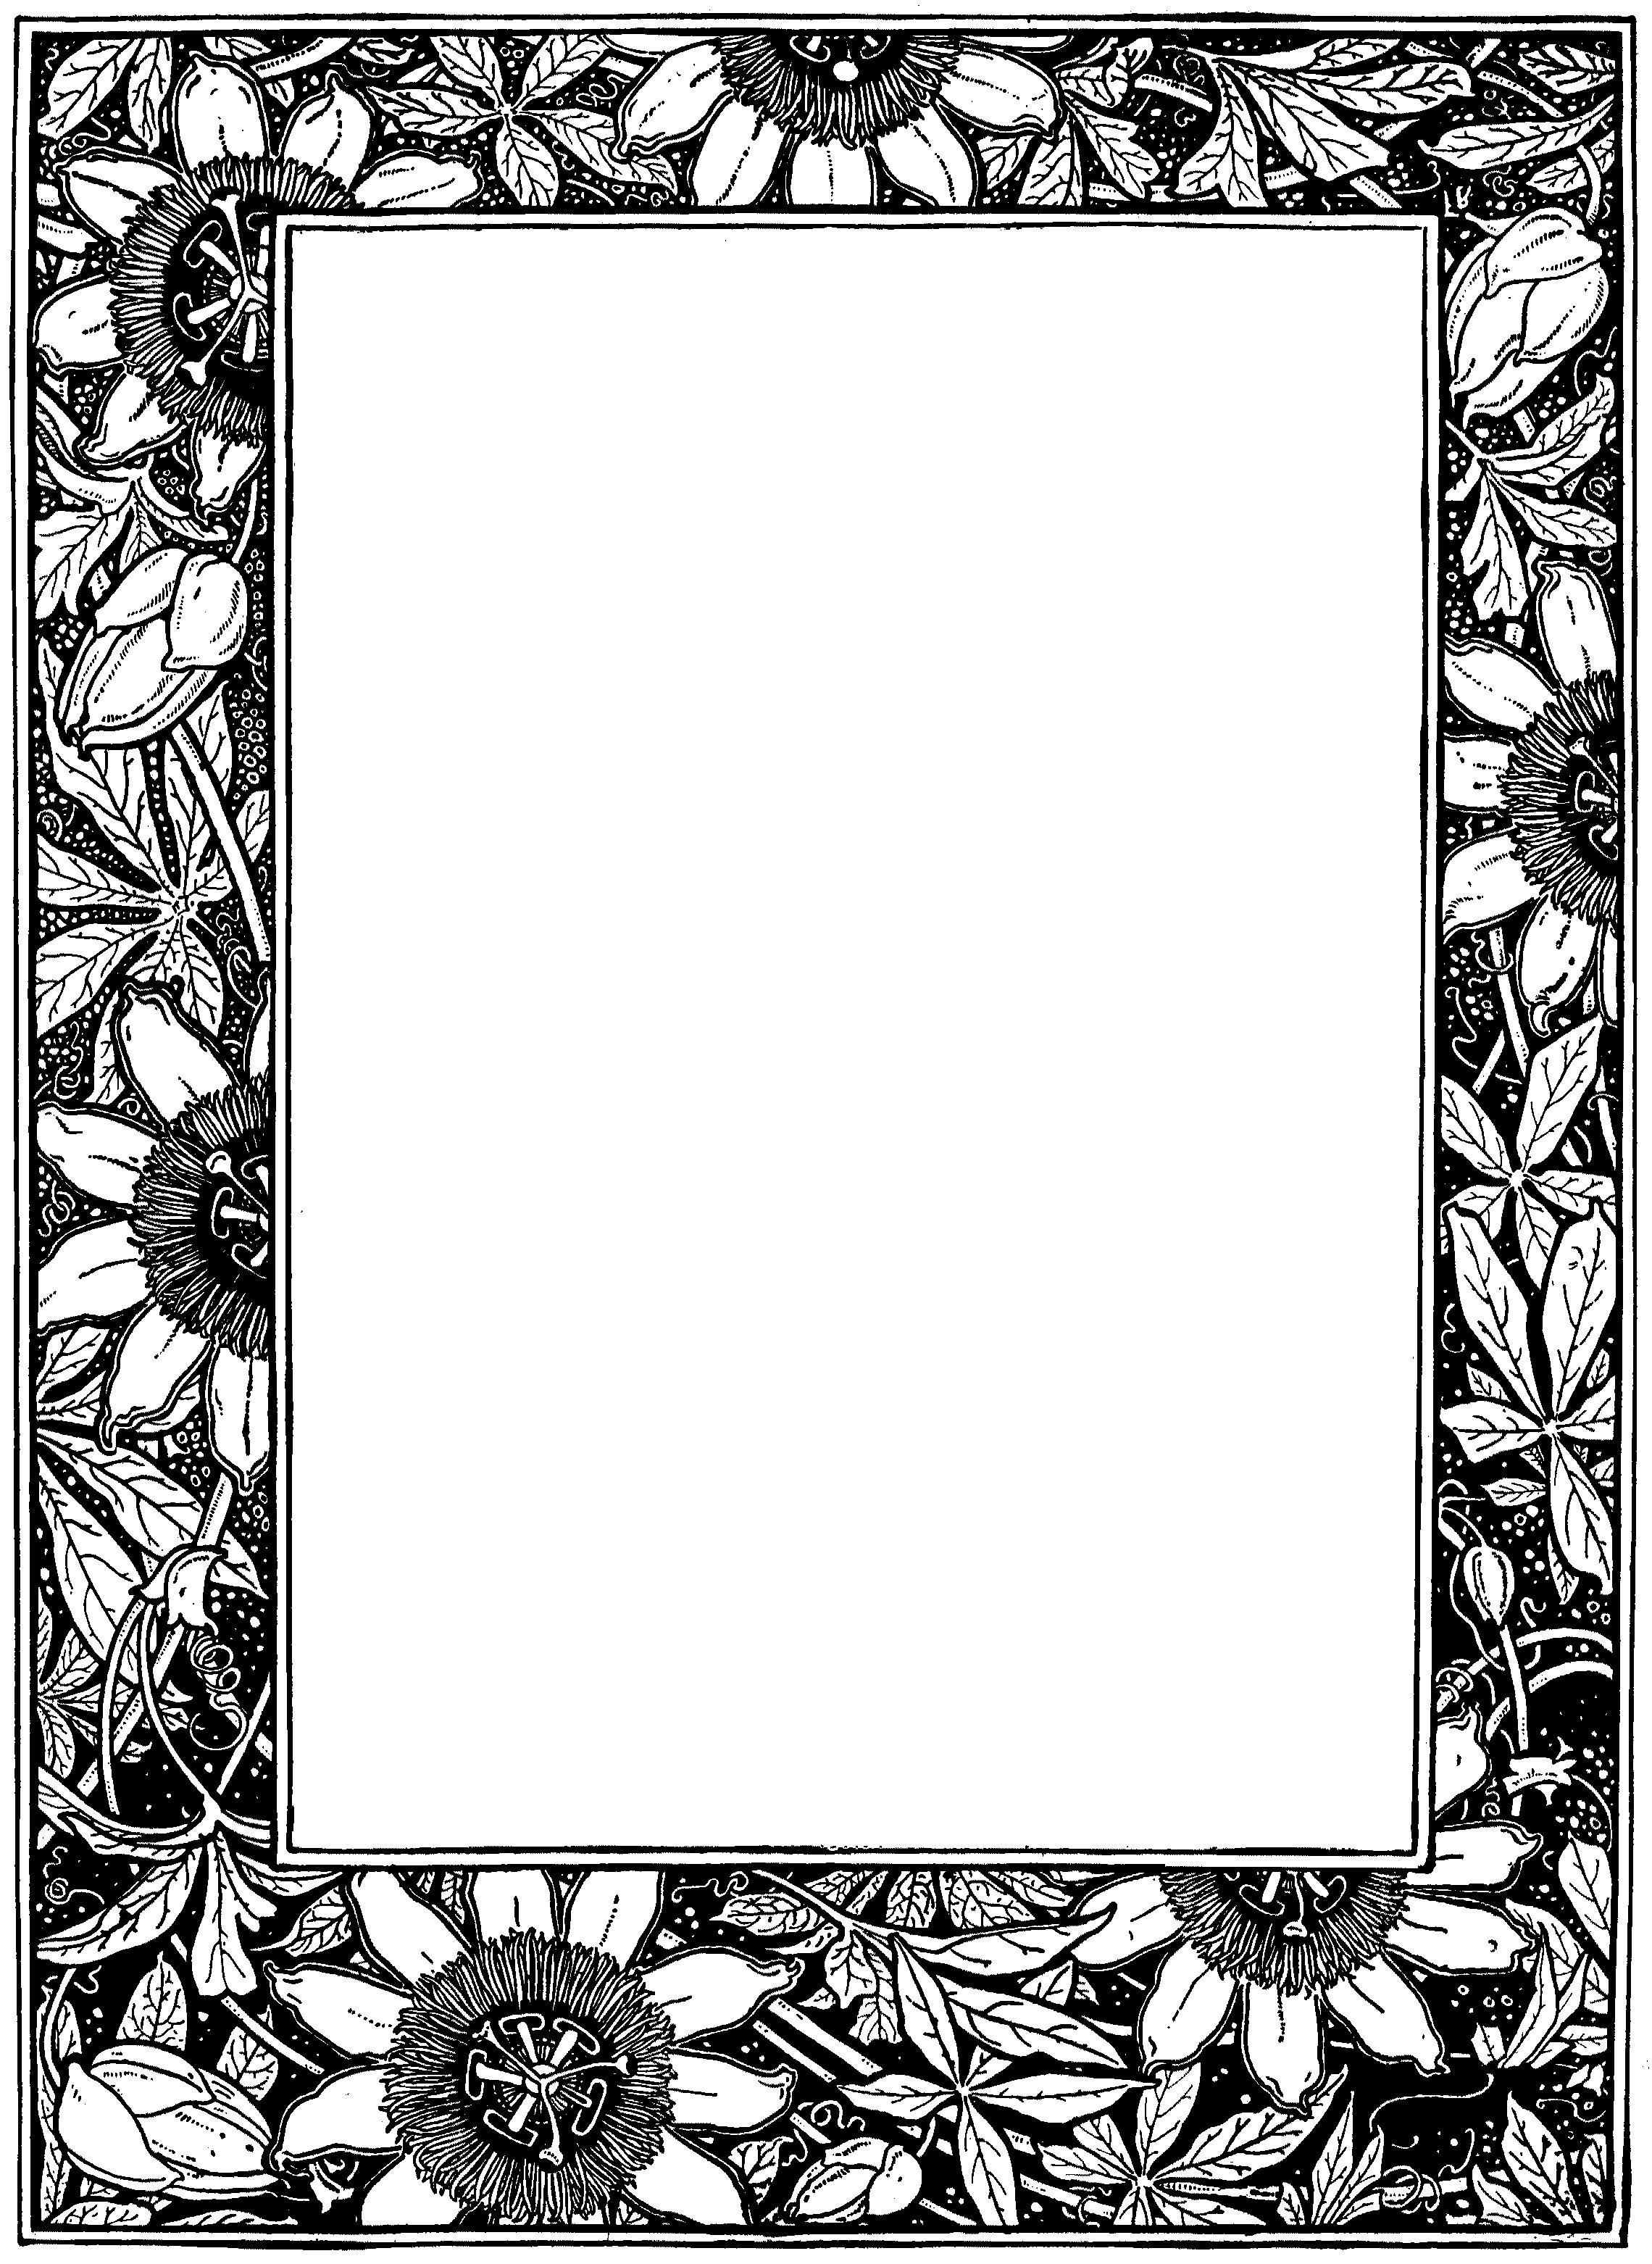 Simple corner border designs for projects